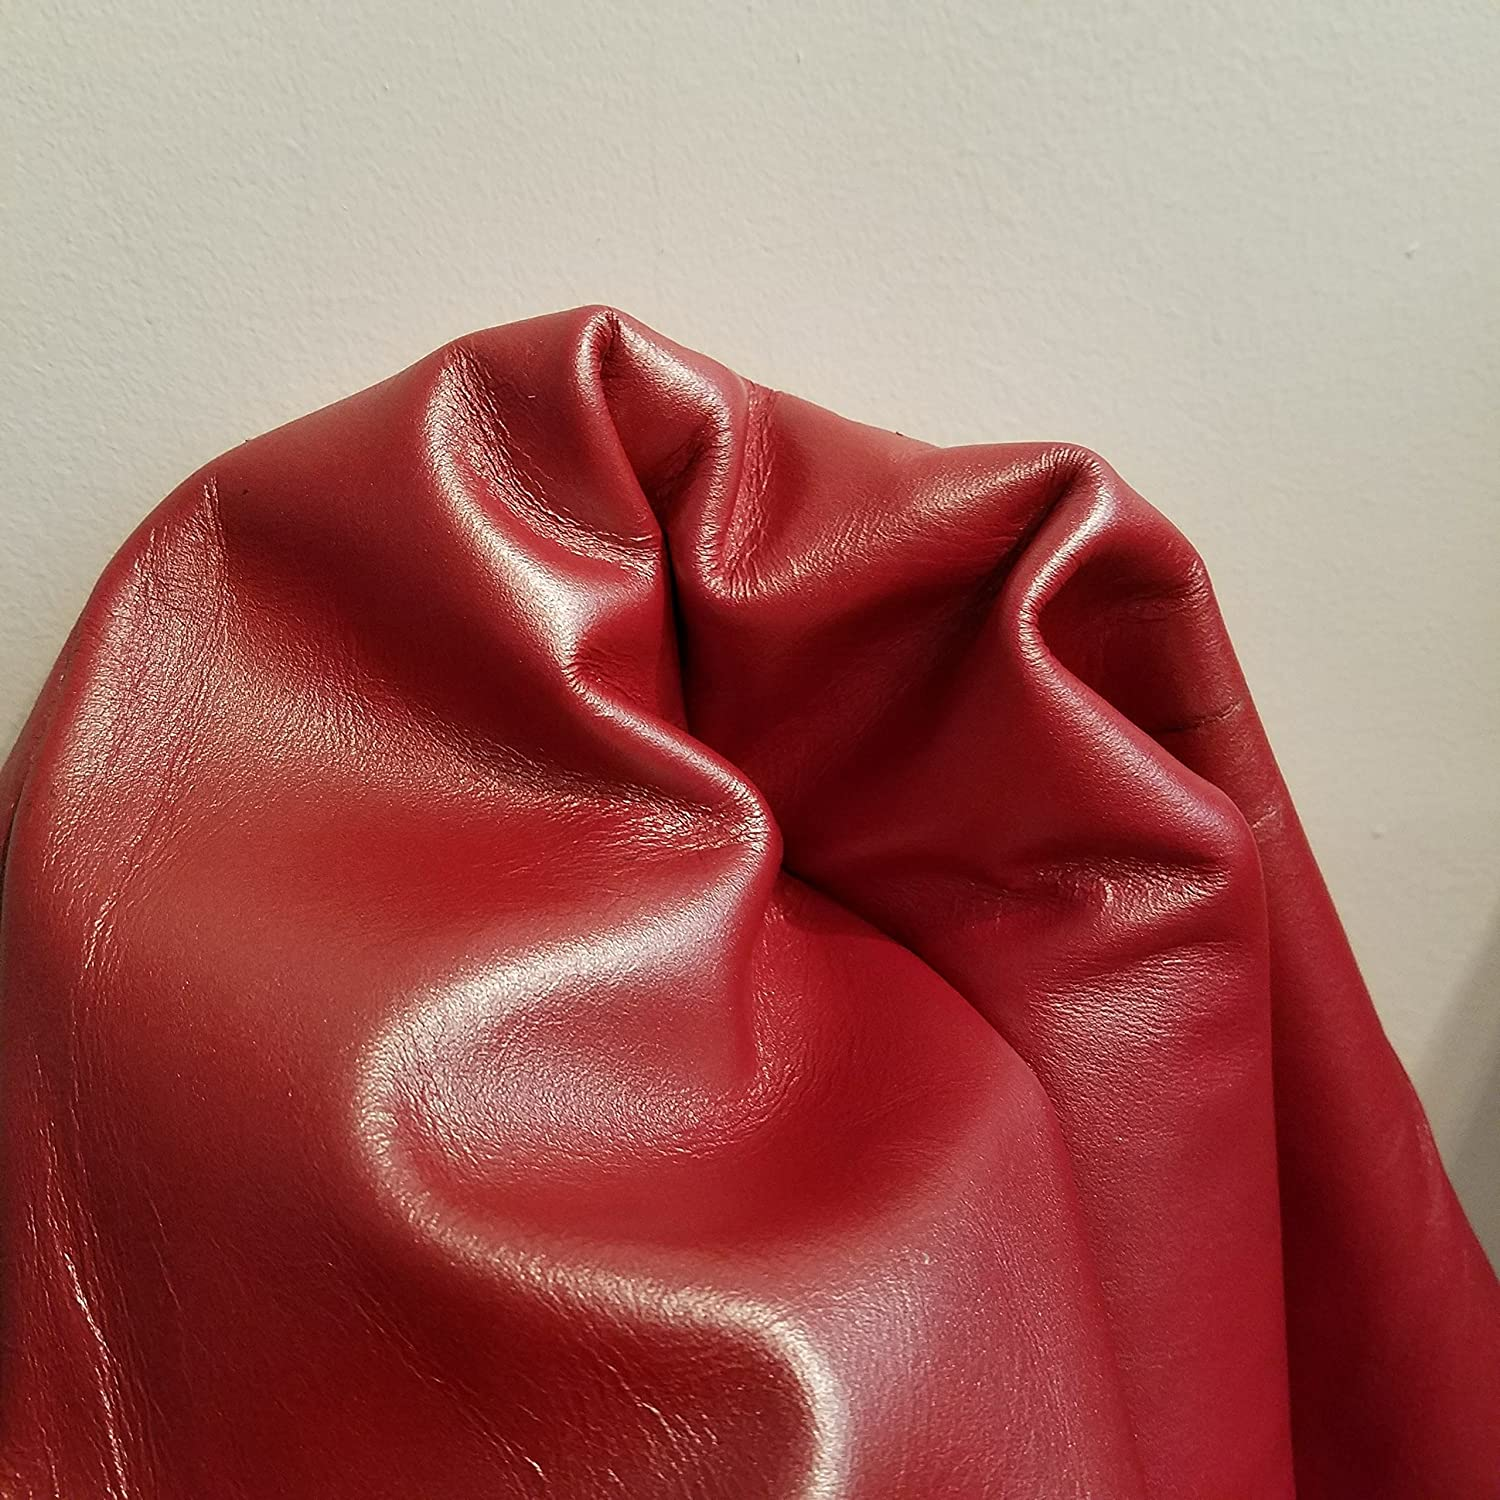 10-Piece Leather Kits with Soft Velvet Inside Red and Black